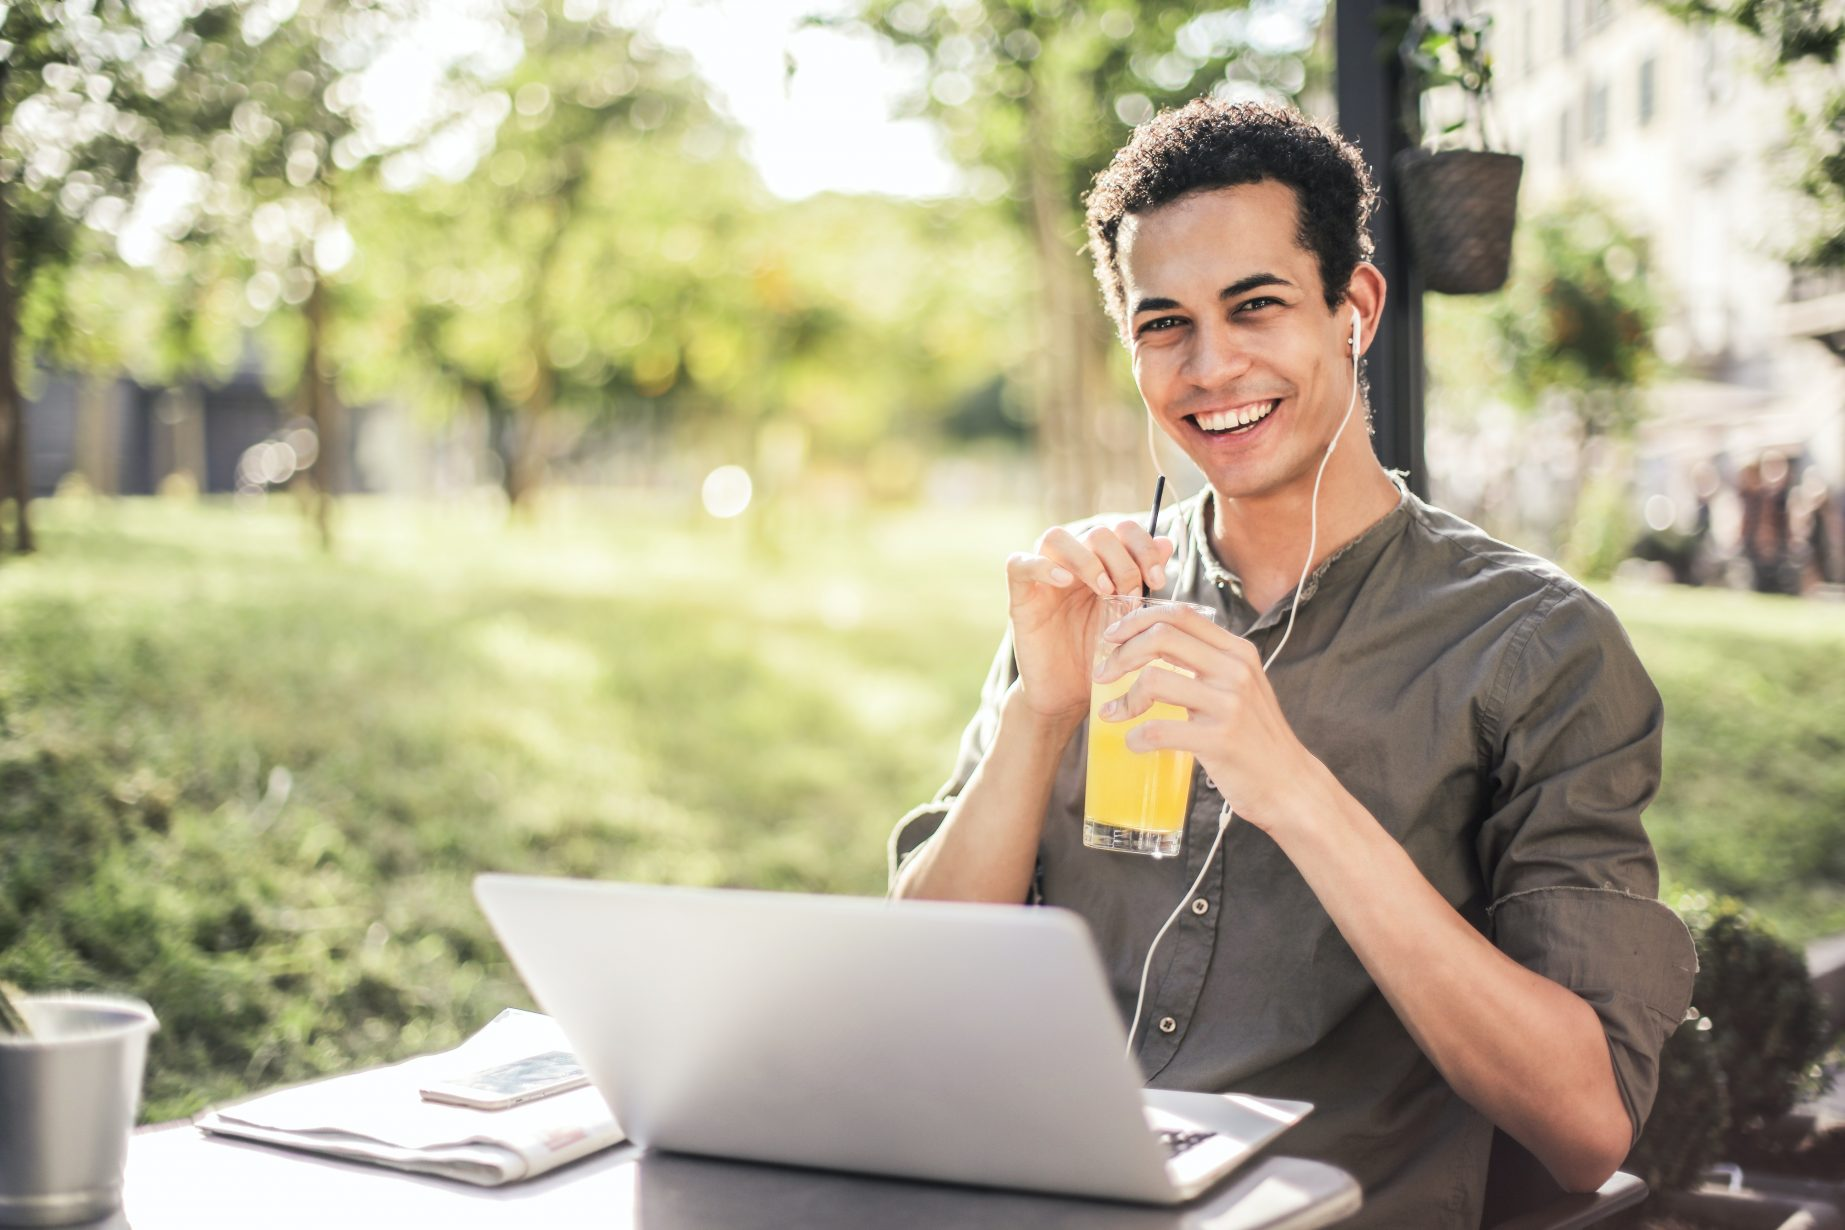 happy-man-sitting-with-laptop-and-juice-in-park-3765030